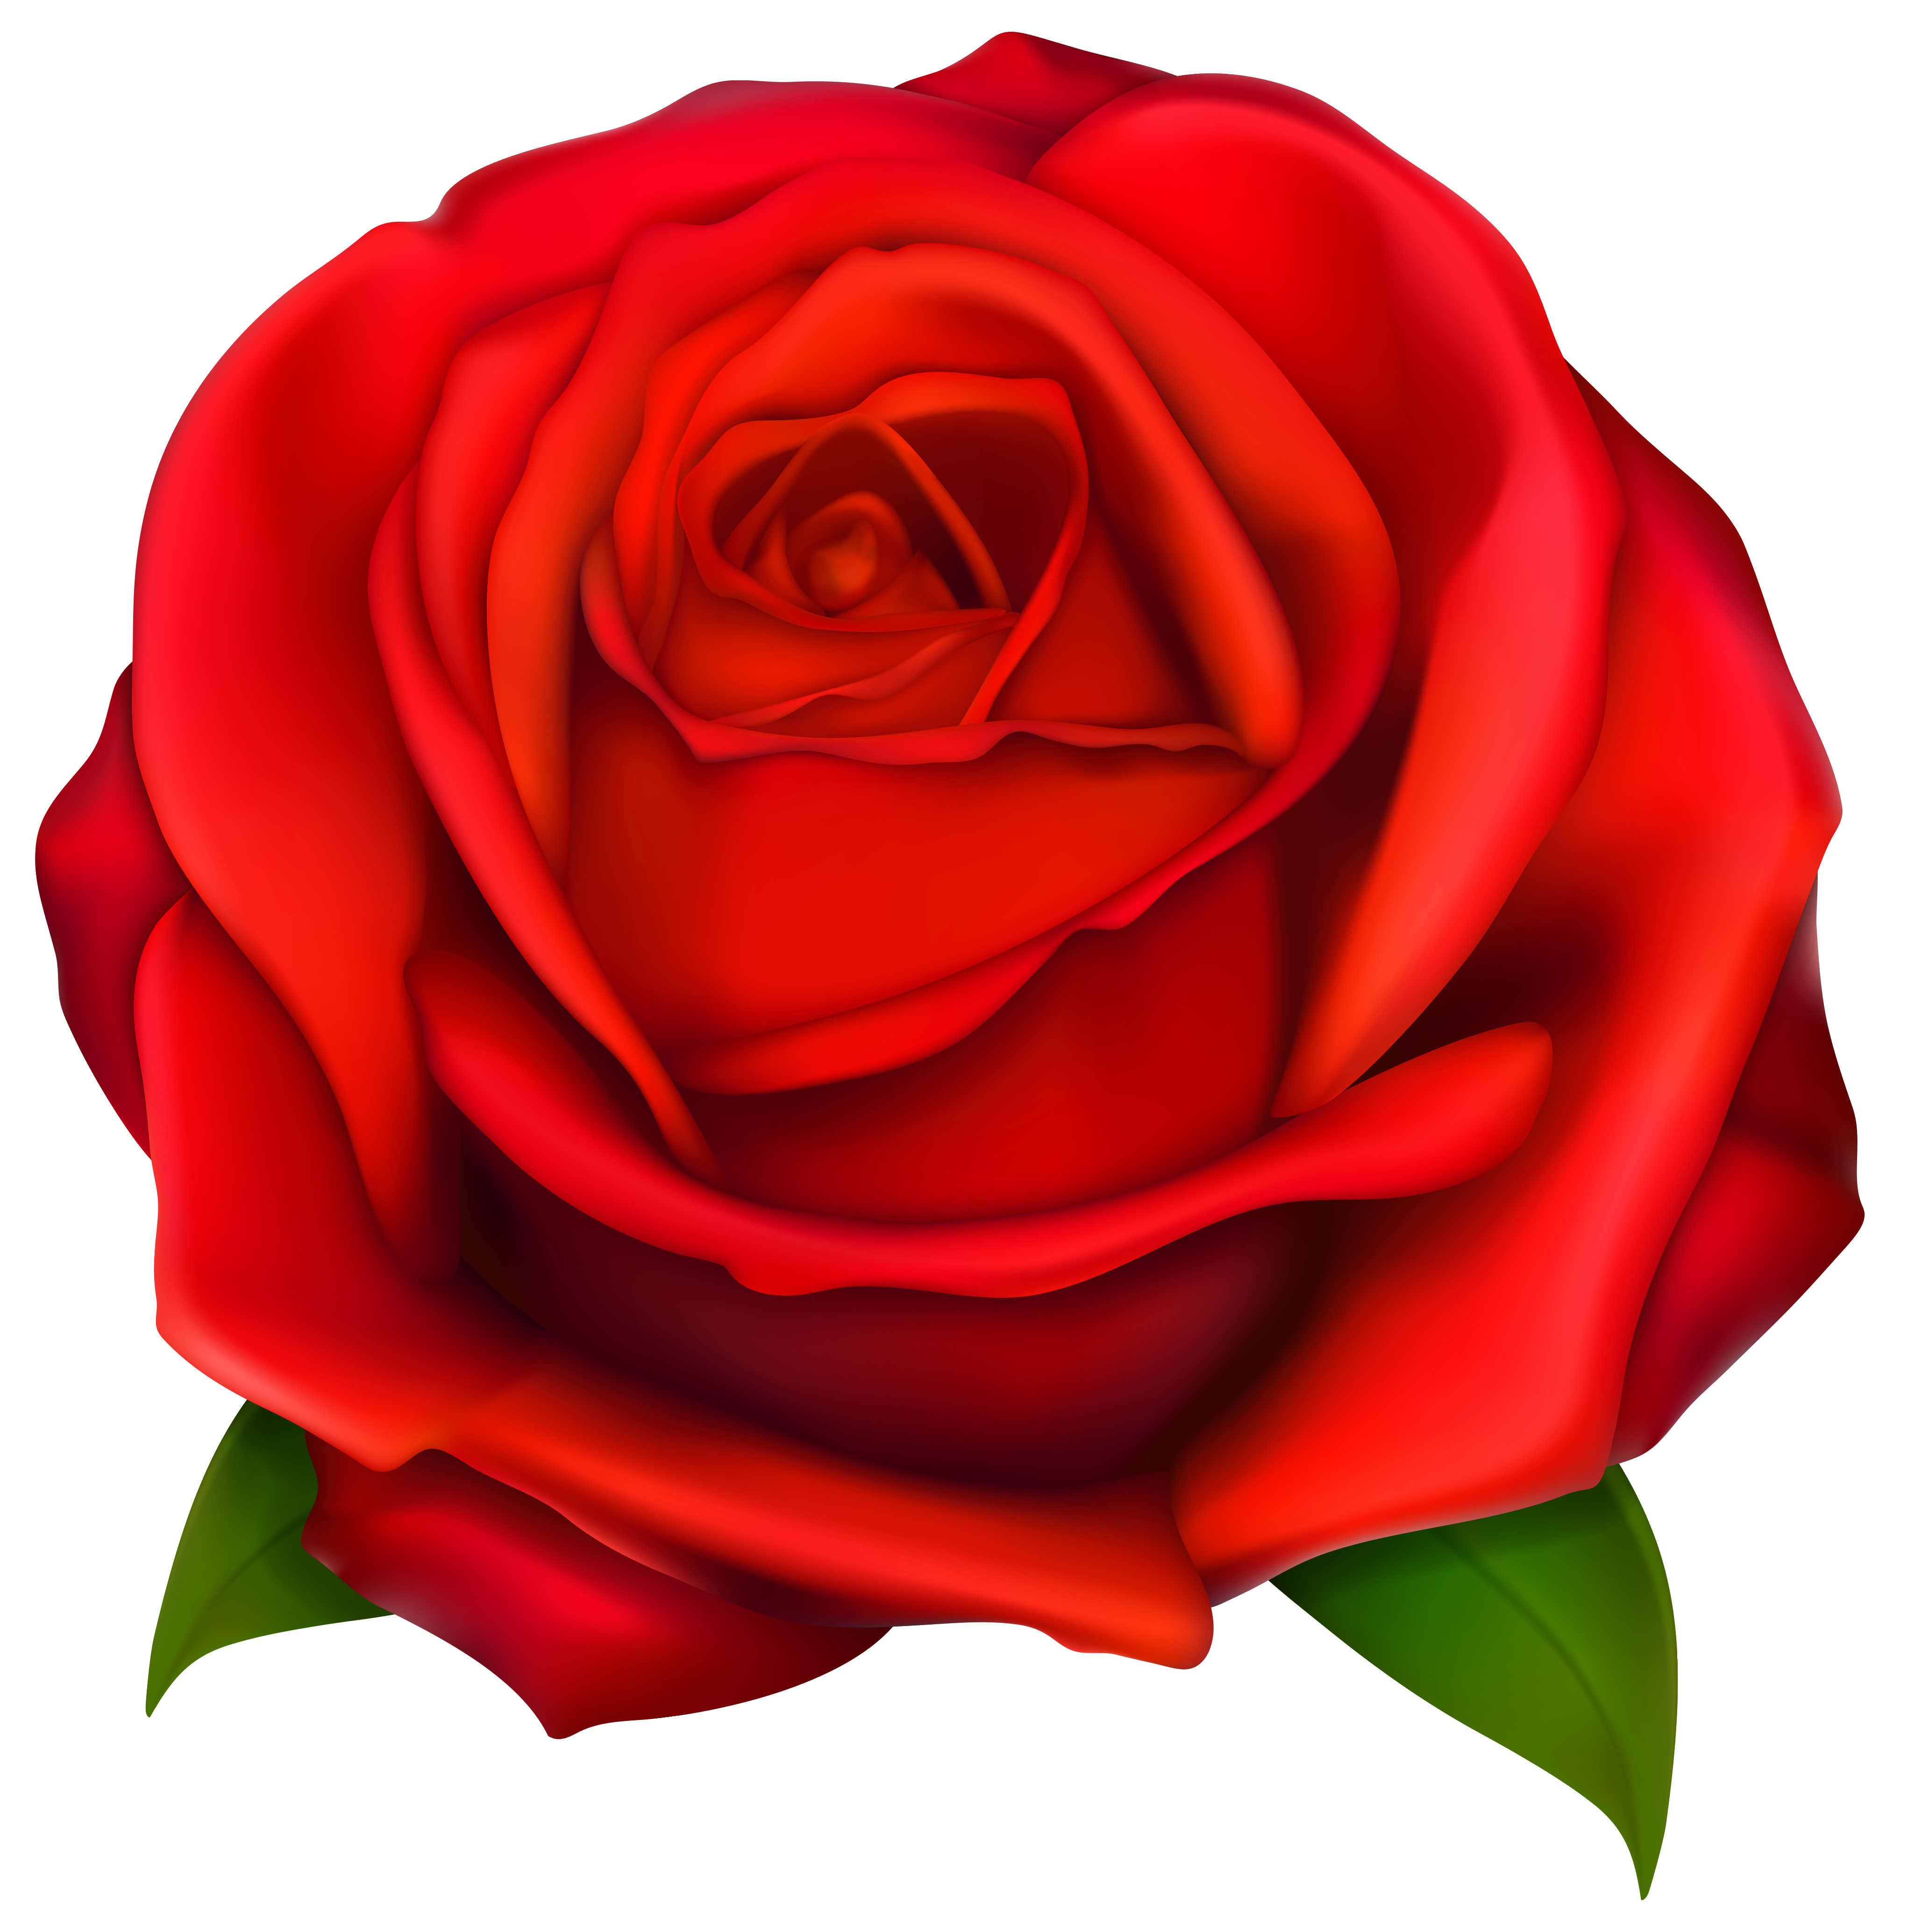 Clipart of rose flower svg royalty free Image of Clip Art Red Rose #7092, Red Roses Clip Art Images Free ... svg royalty free